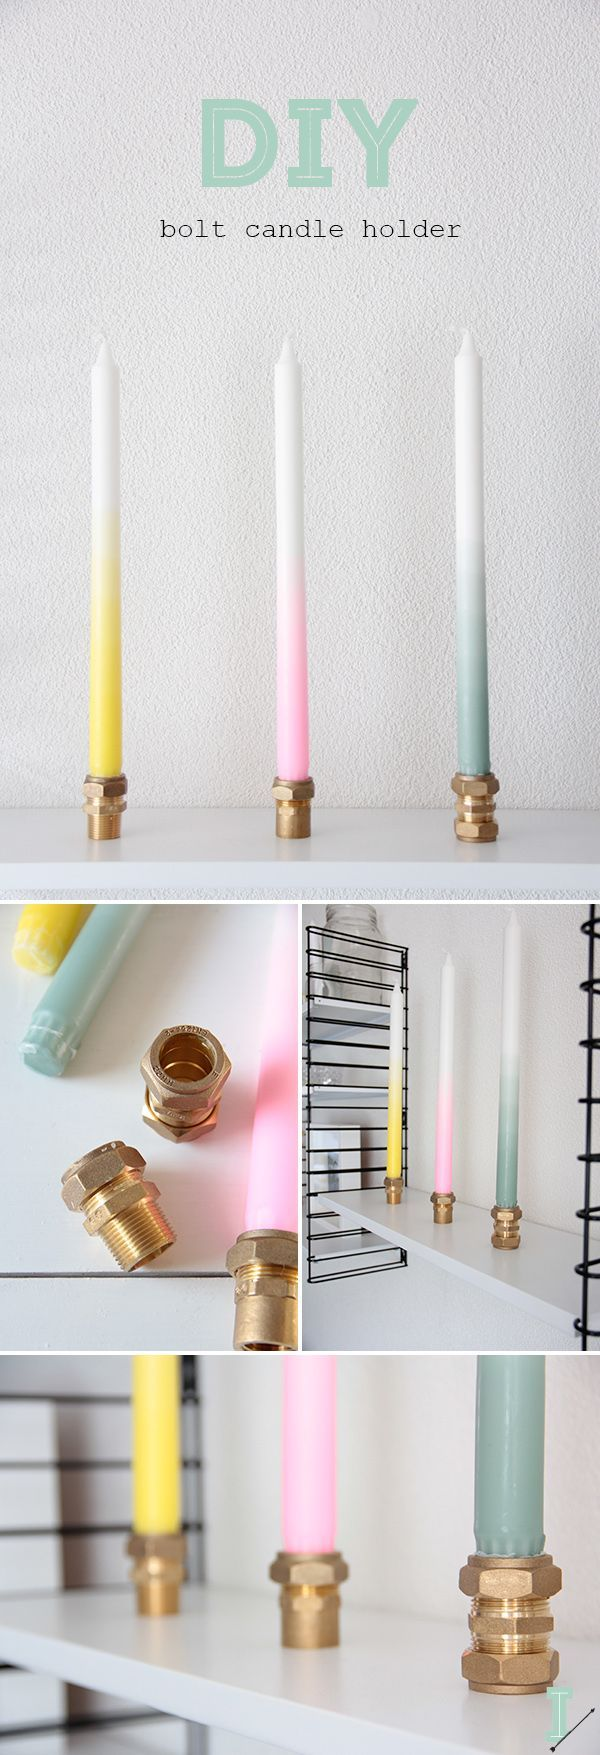 6 Easy (and affordable) DIY candle holder projects for your wedding (or home!)